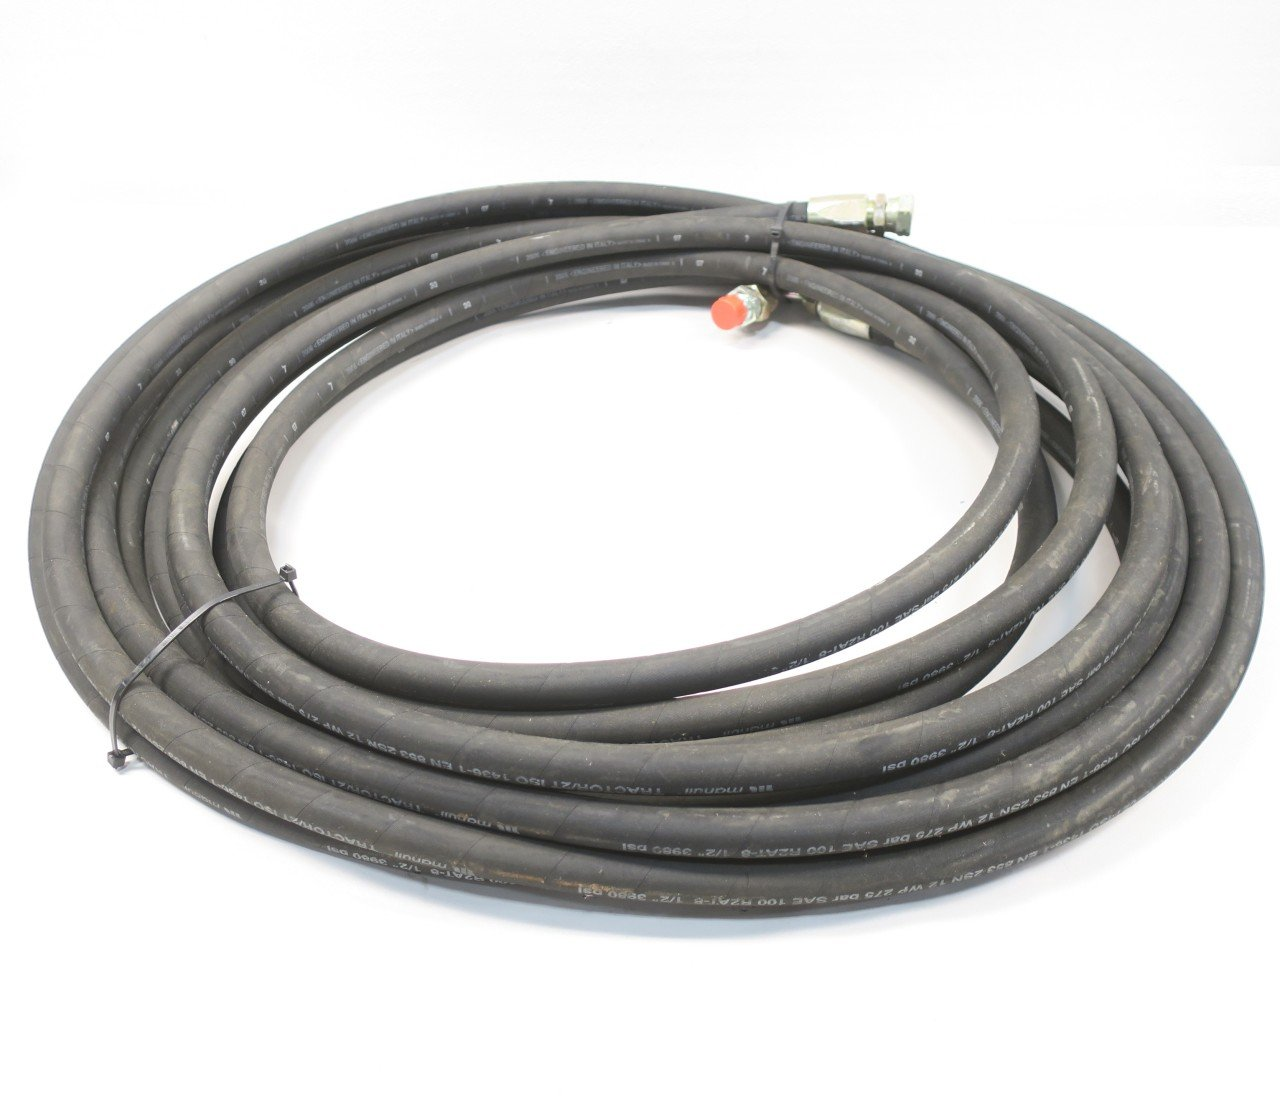 NEW MANULI R2AT-8 TRACTOR/2T MALE / FEMALE 50FT 3980PSI HYDRAULIC HOSE D585876